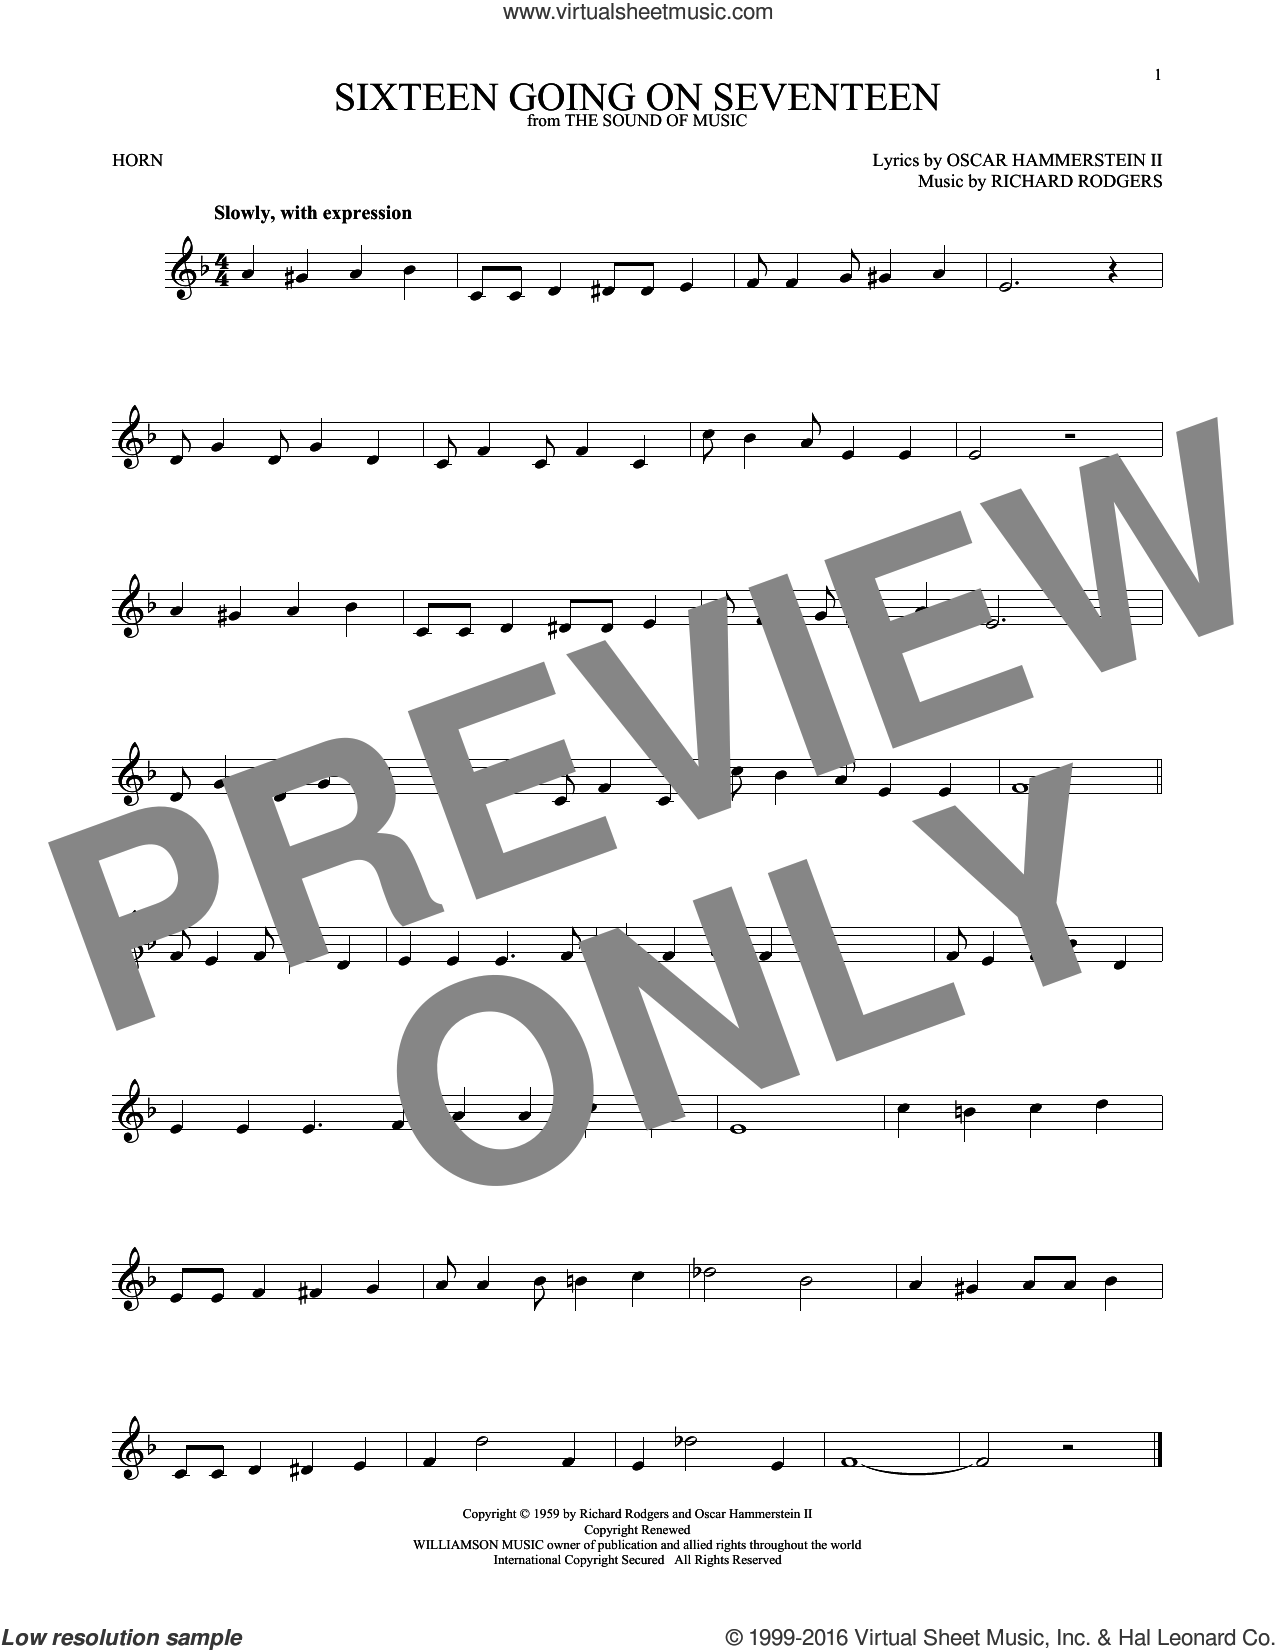 Sixteen Going On Seventeen (from The Sound of Music) sheet music for horn solo by Rodgers & Hammerstein, Oscar II Hammerstein and Richard Rodgers, intermediate skill level